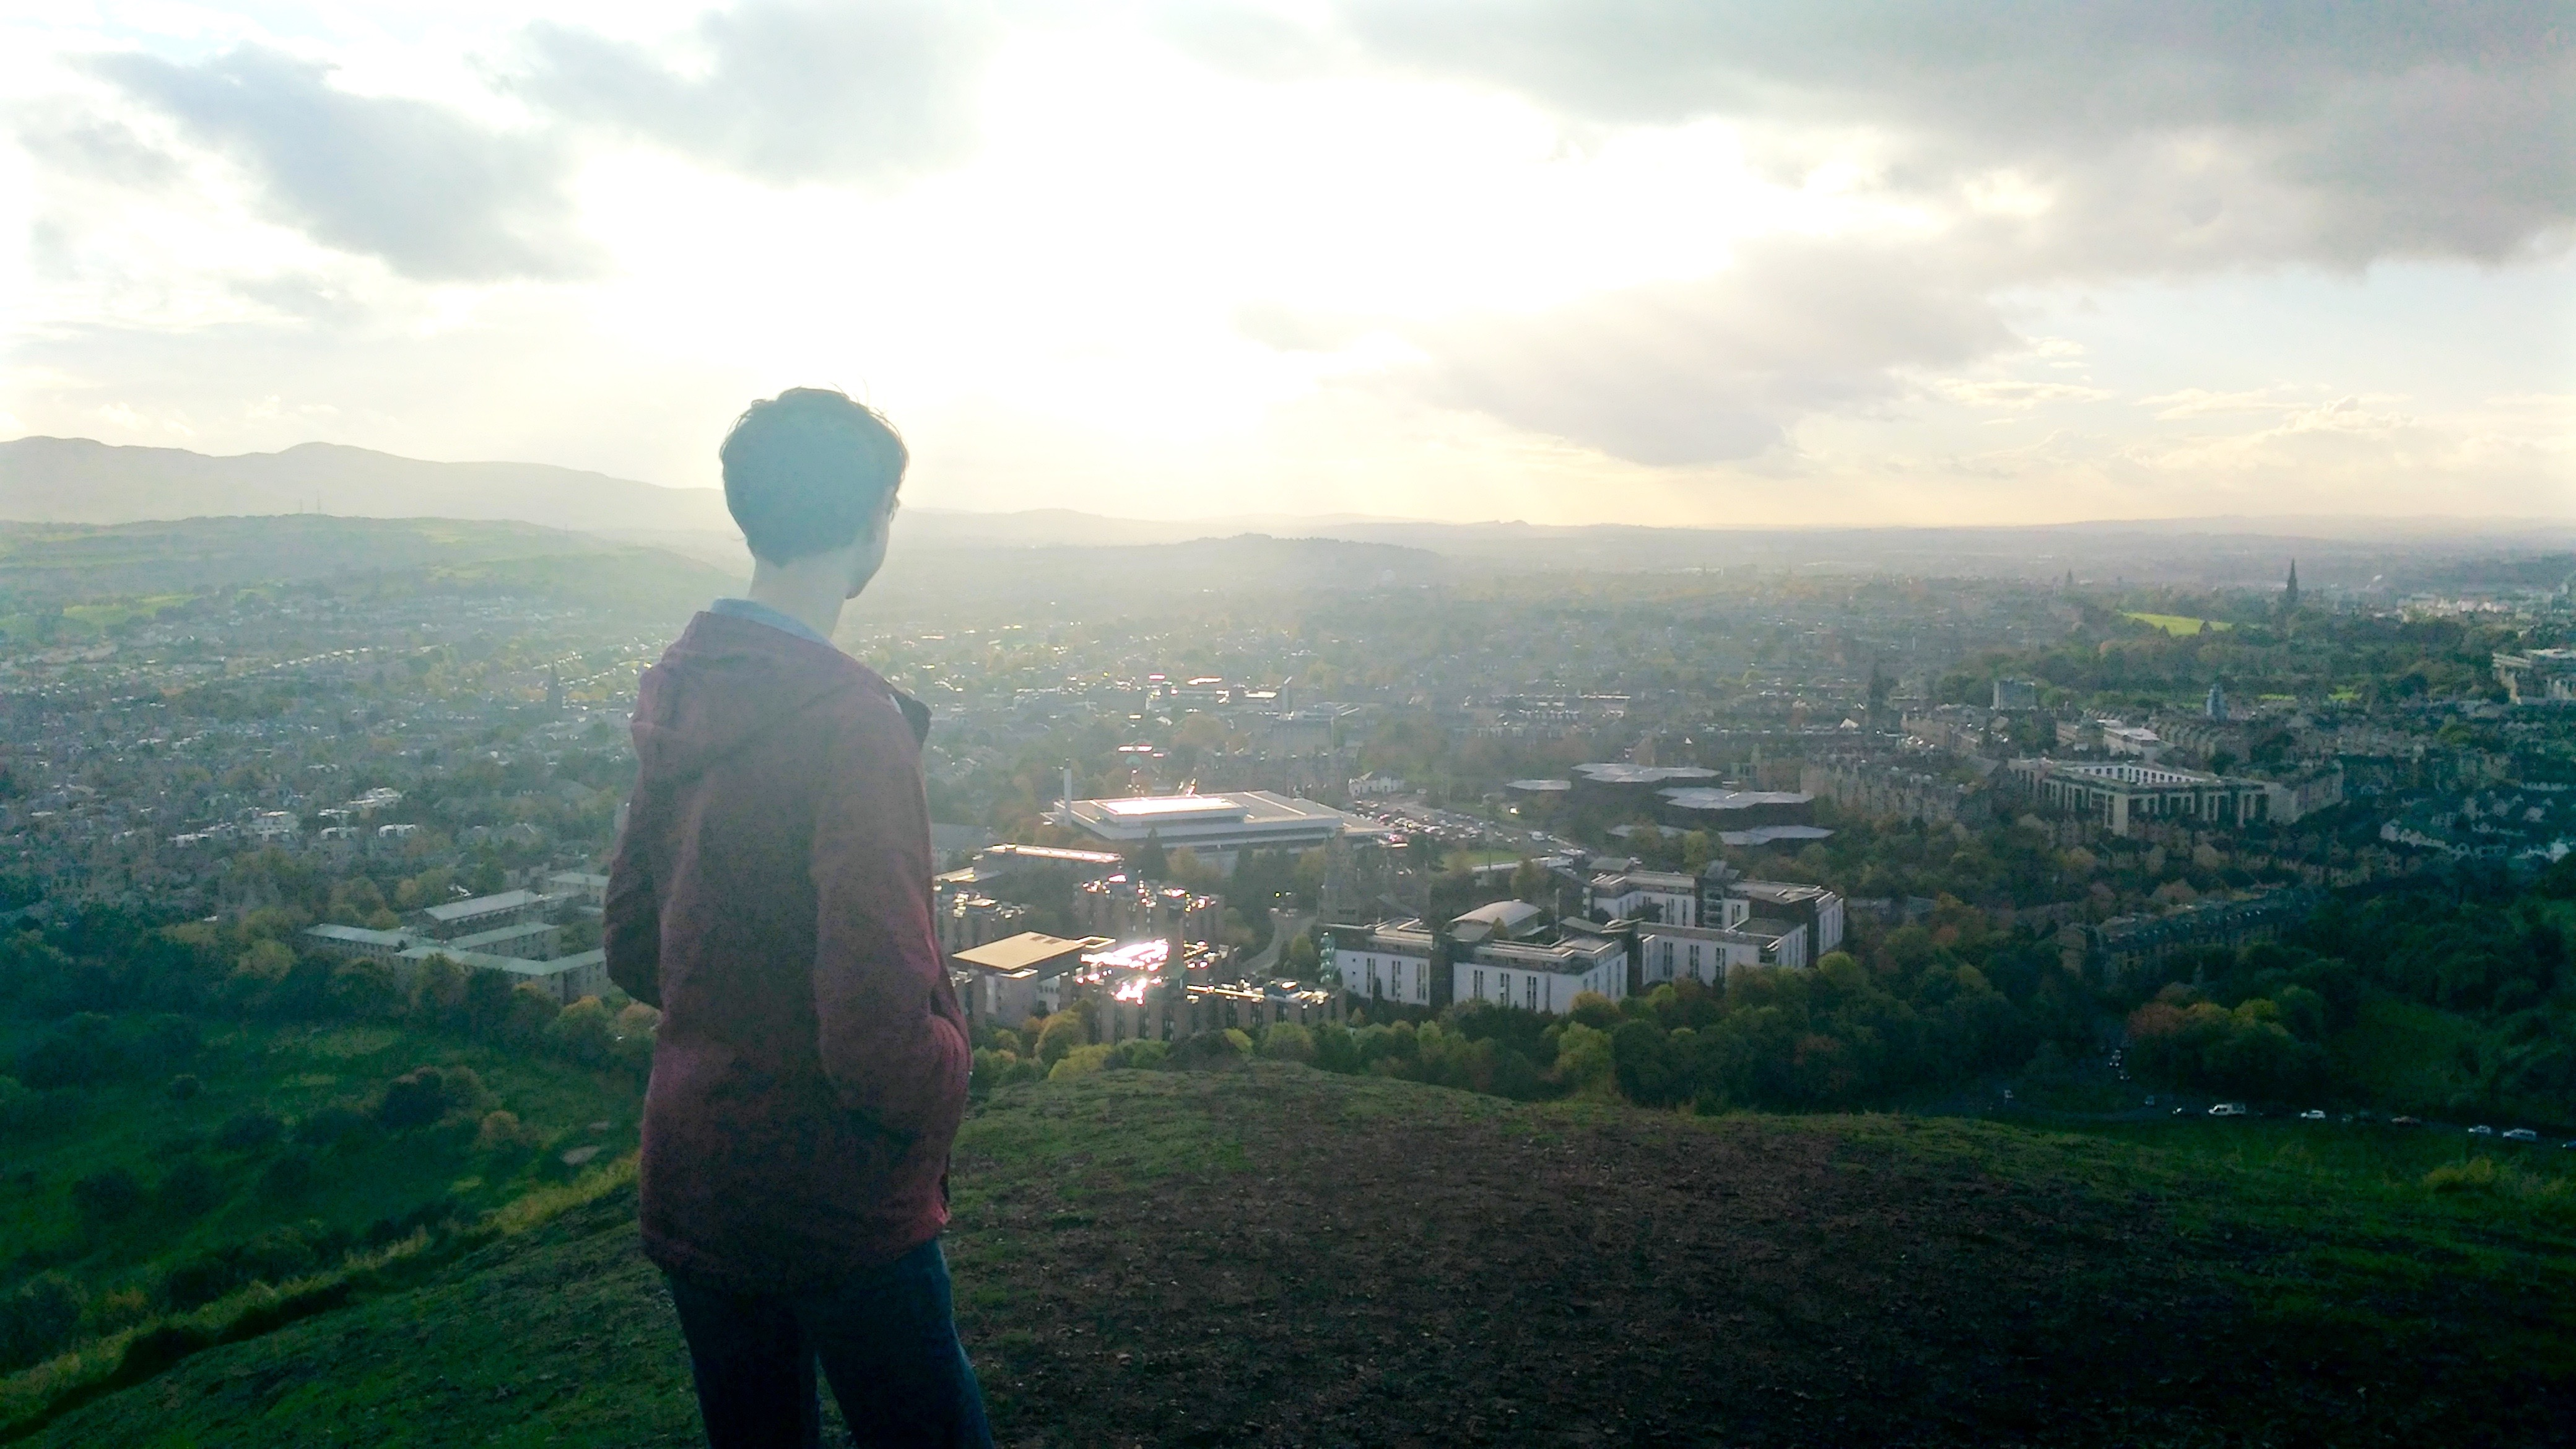 Arthur's Seat has become my place to get away from the city and reflect on my  experience abroad